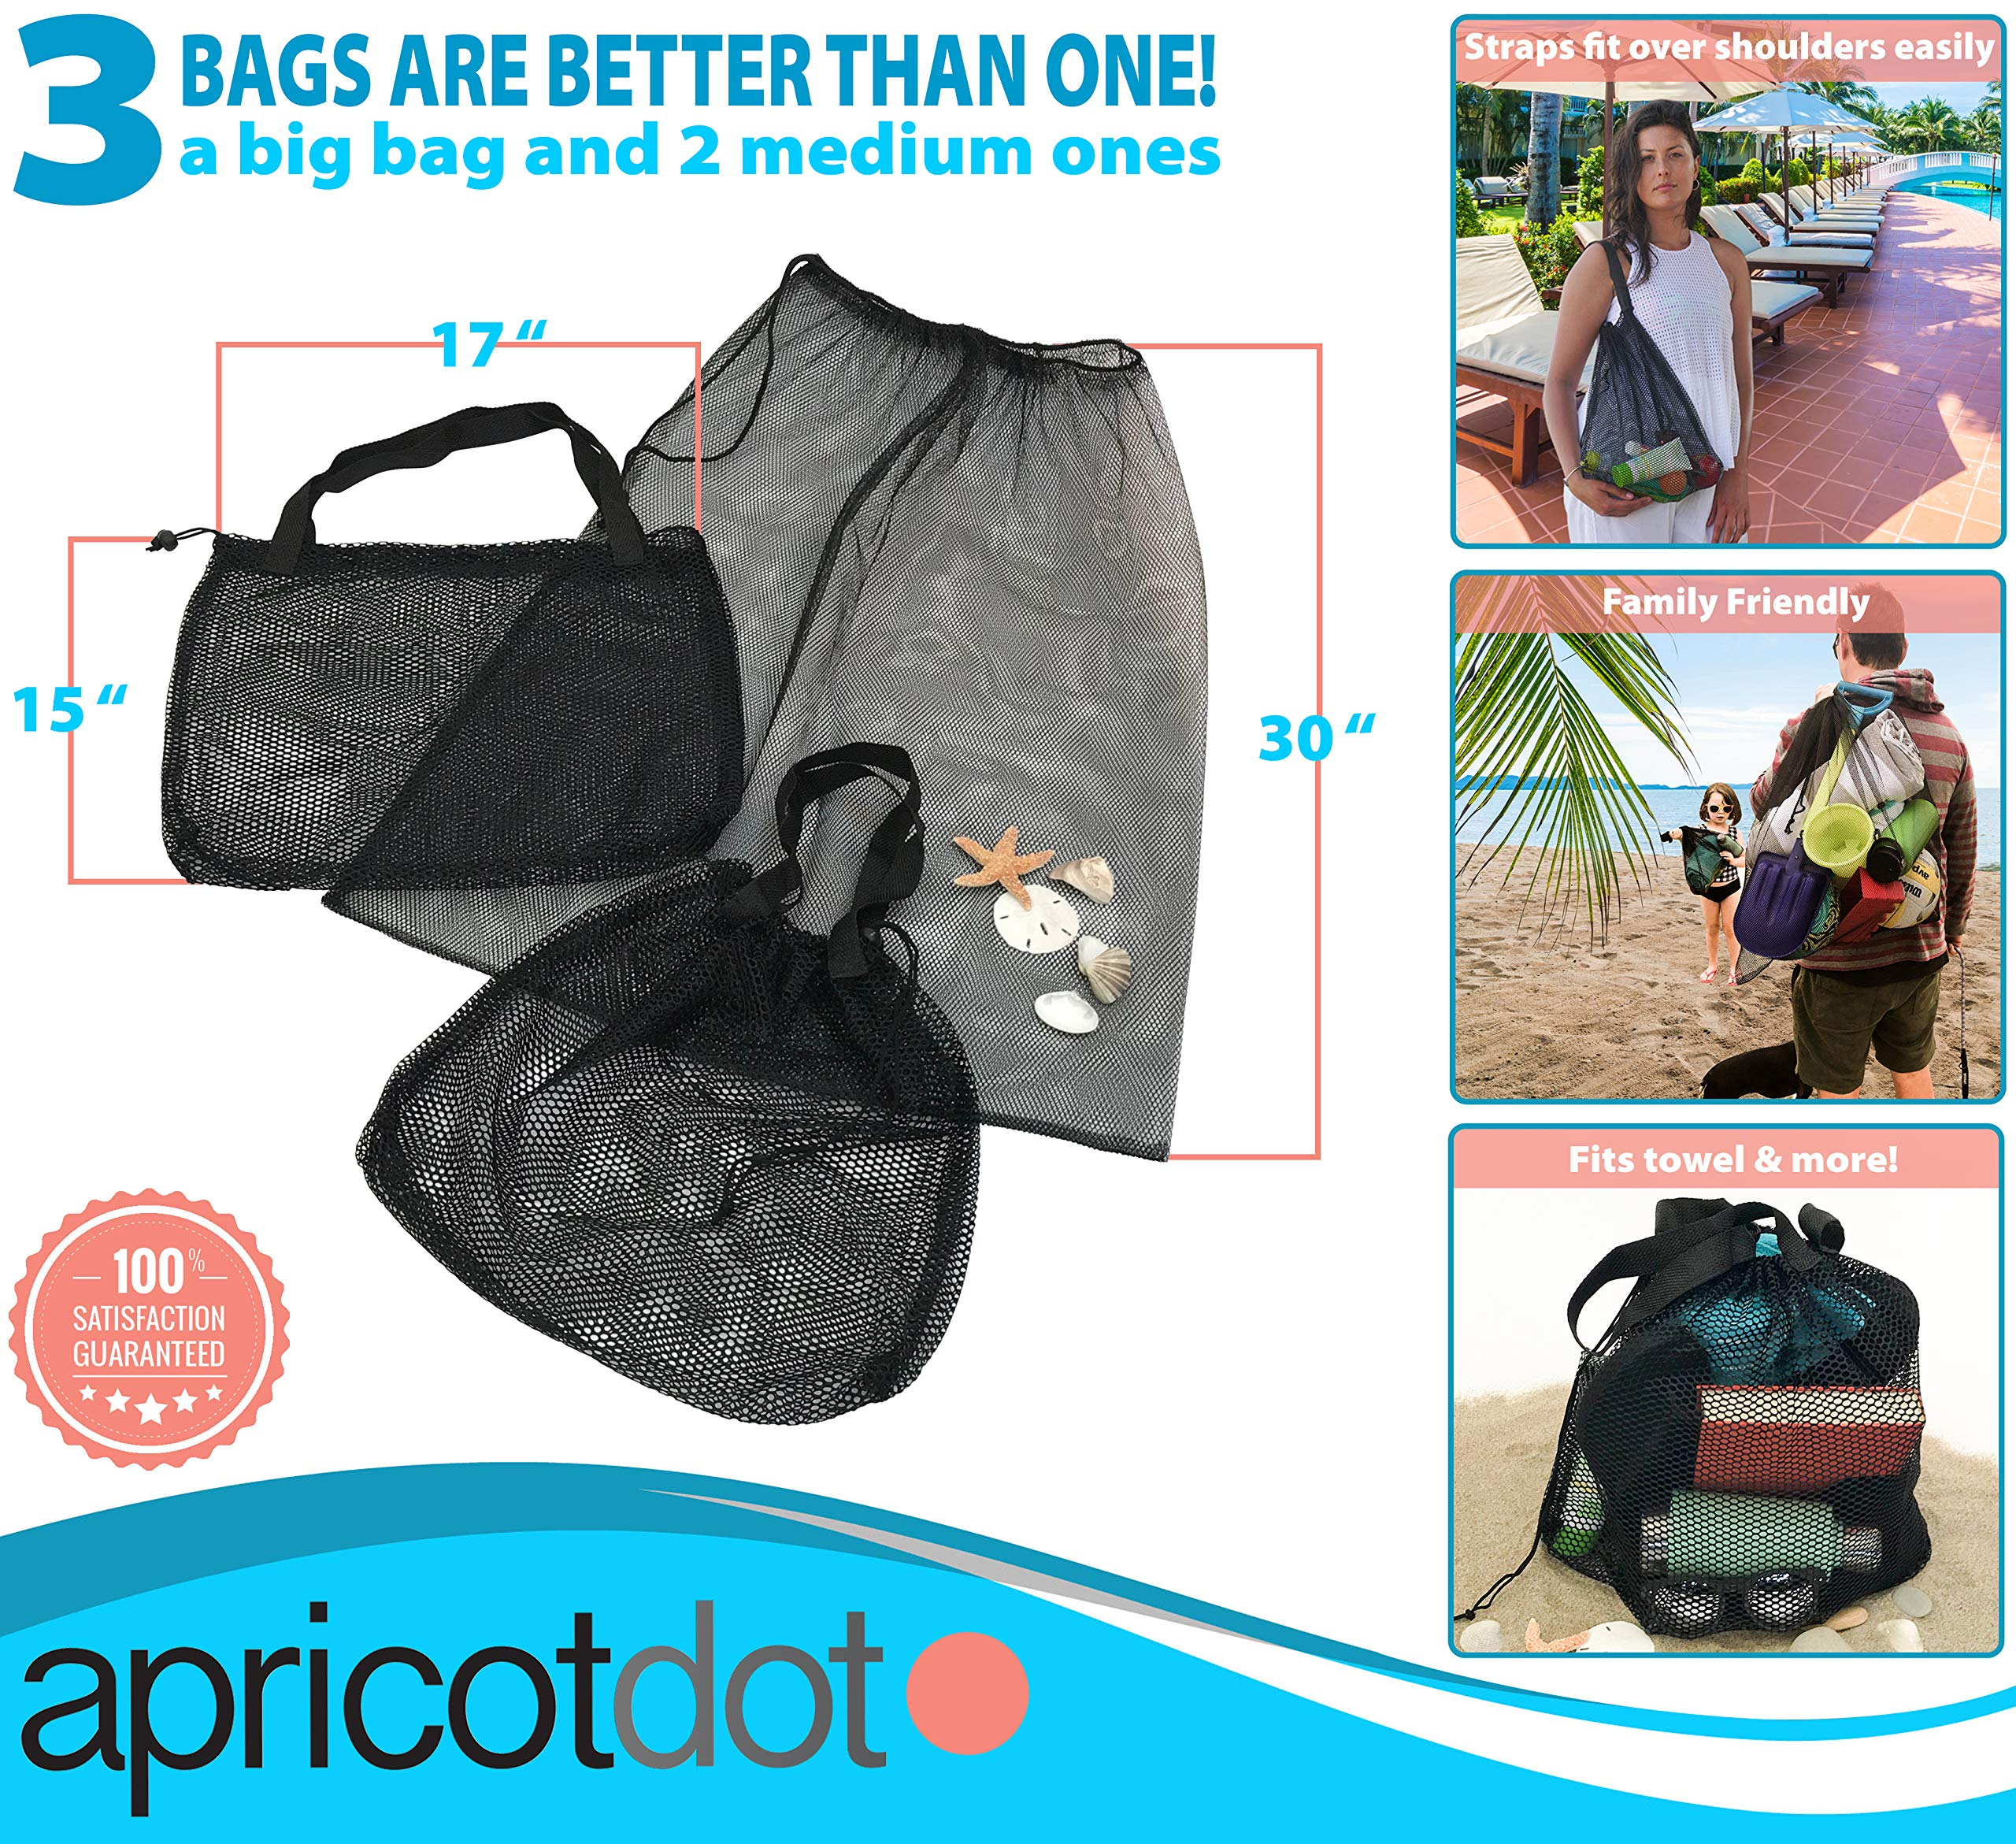 Beach Tote - Gym Bag - Set of 3 with 2 Sizes - Mesh Urban Design for Multi Use by apricot dot (Image #2)